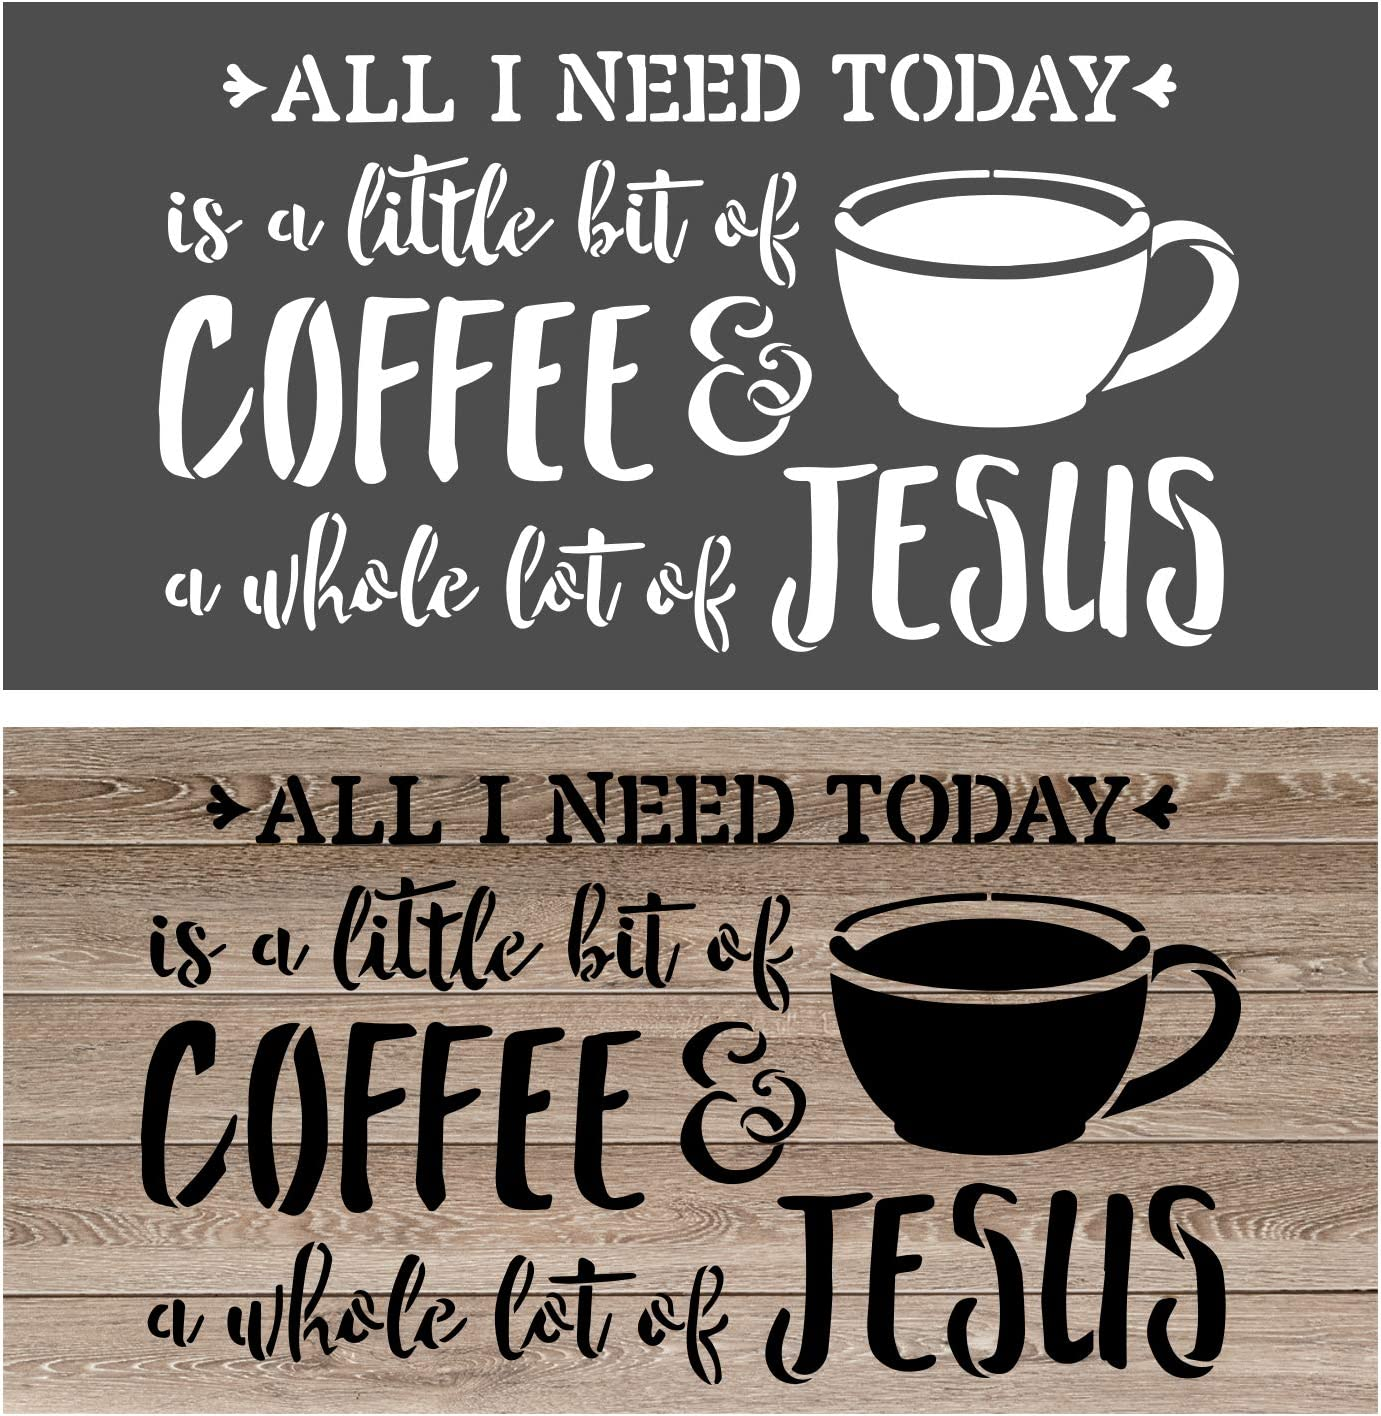 OCCdesign All I Need Today is Coffee and Jesus Sign Stencils - Rustic Farmhouse Inspirational Template for Painting Spraying Crafts Décor